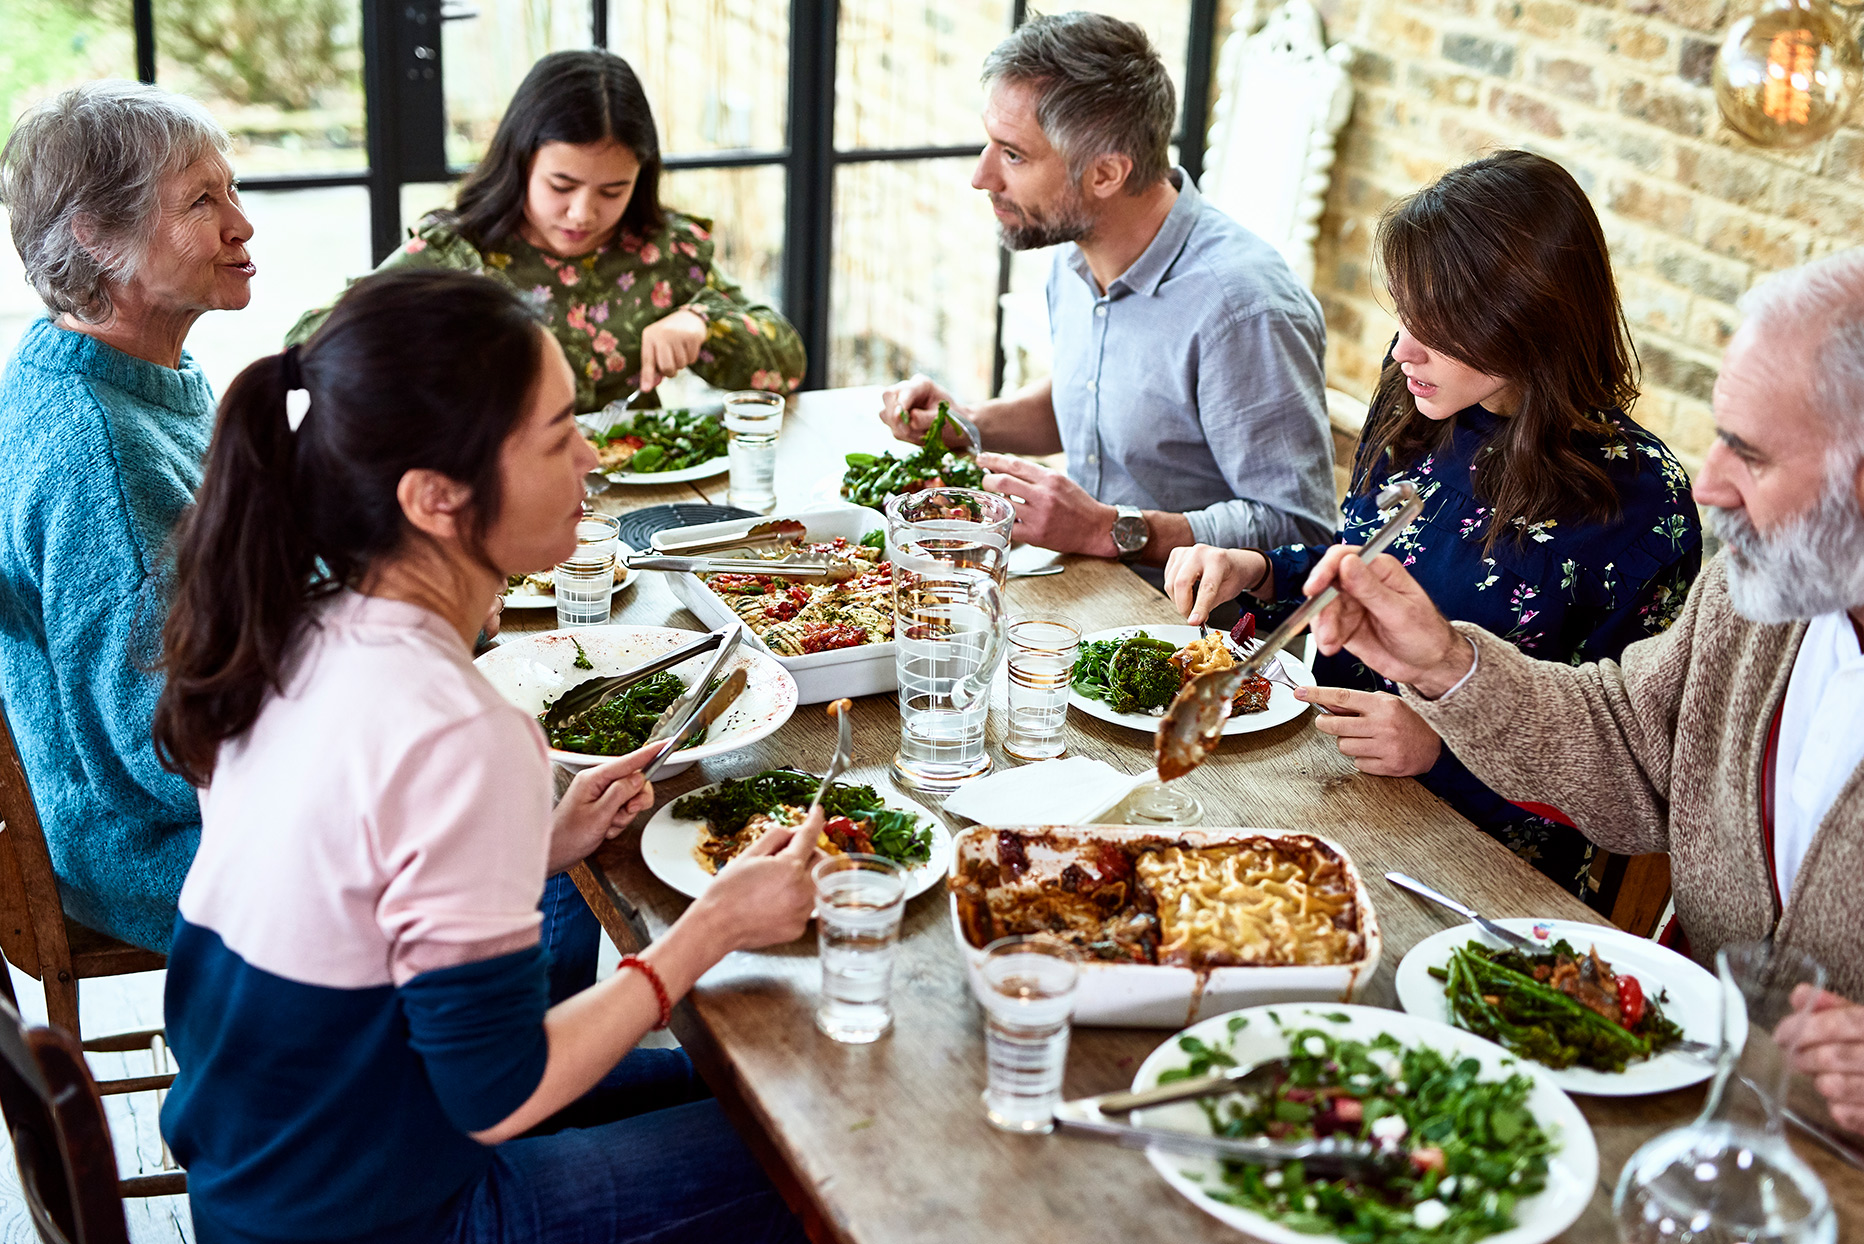 family sharing meal together